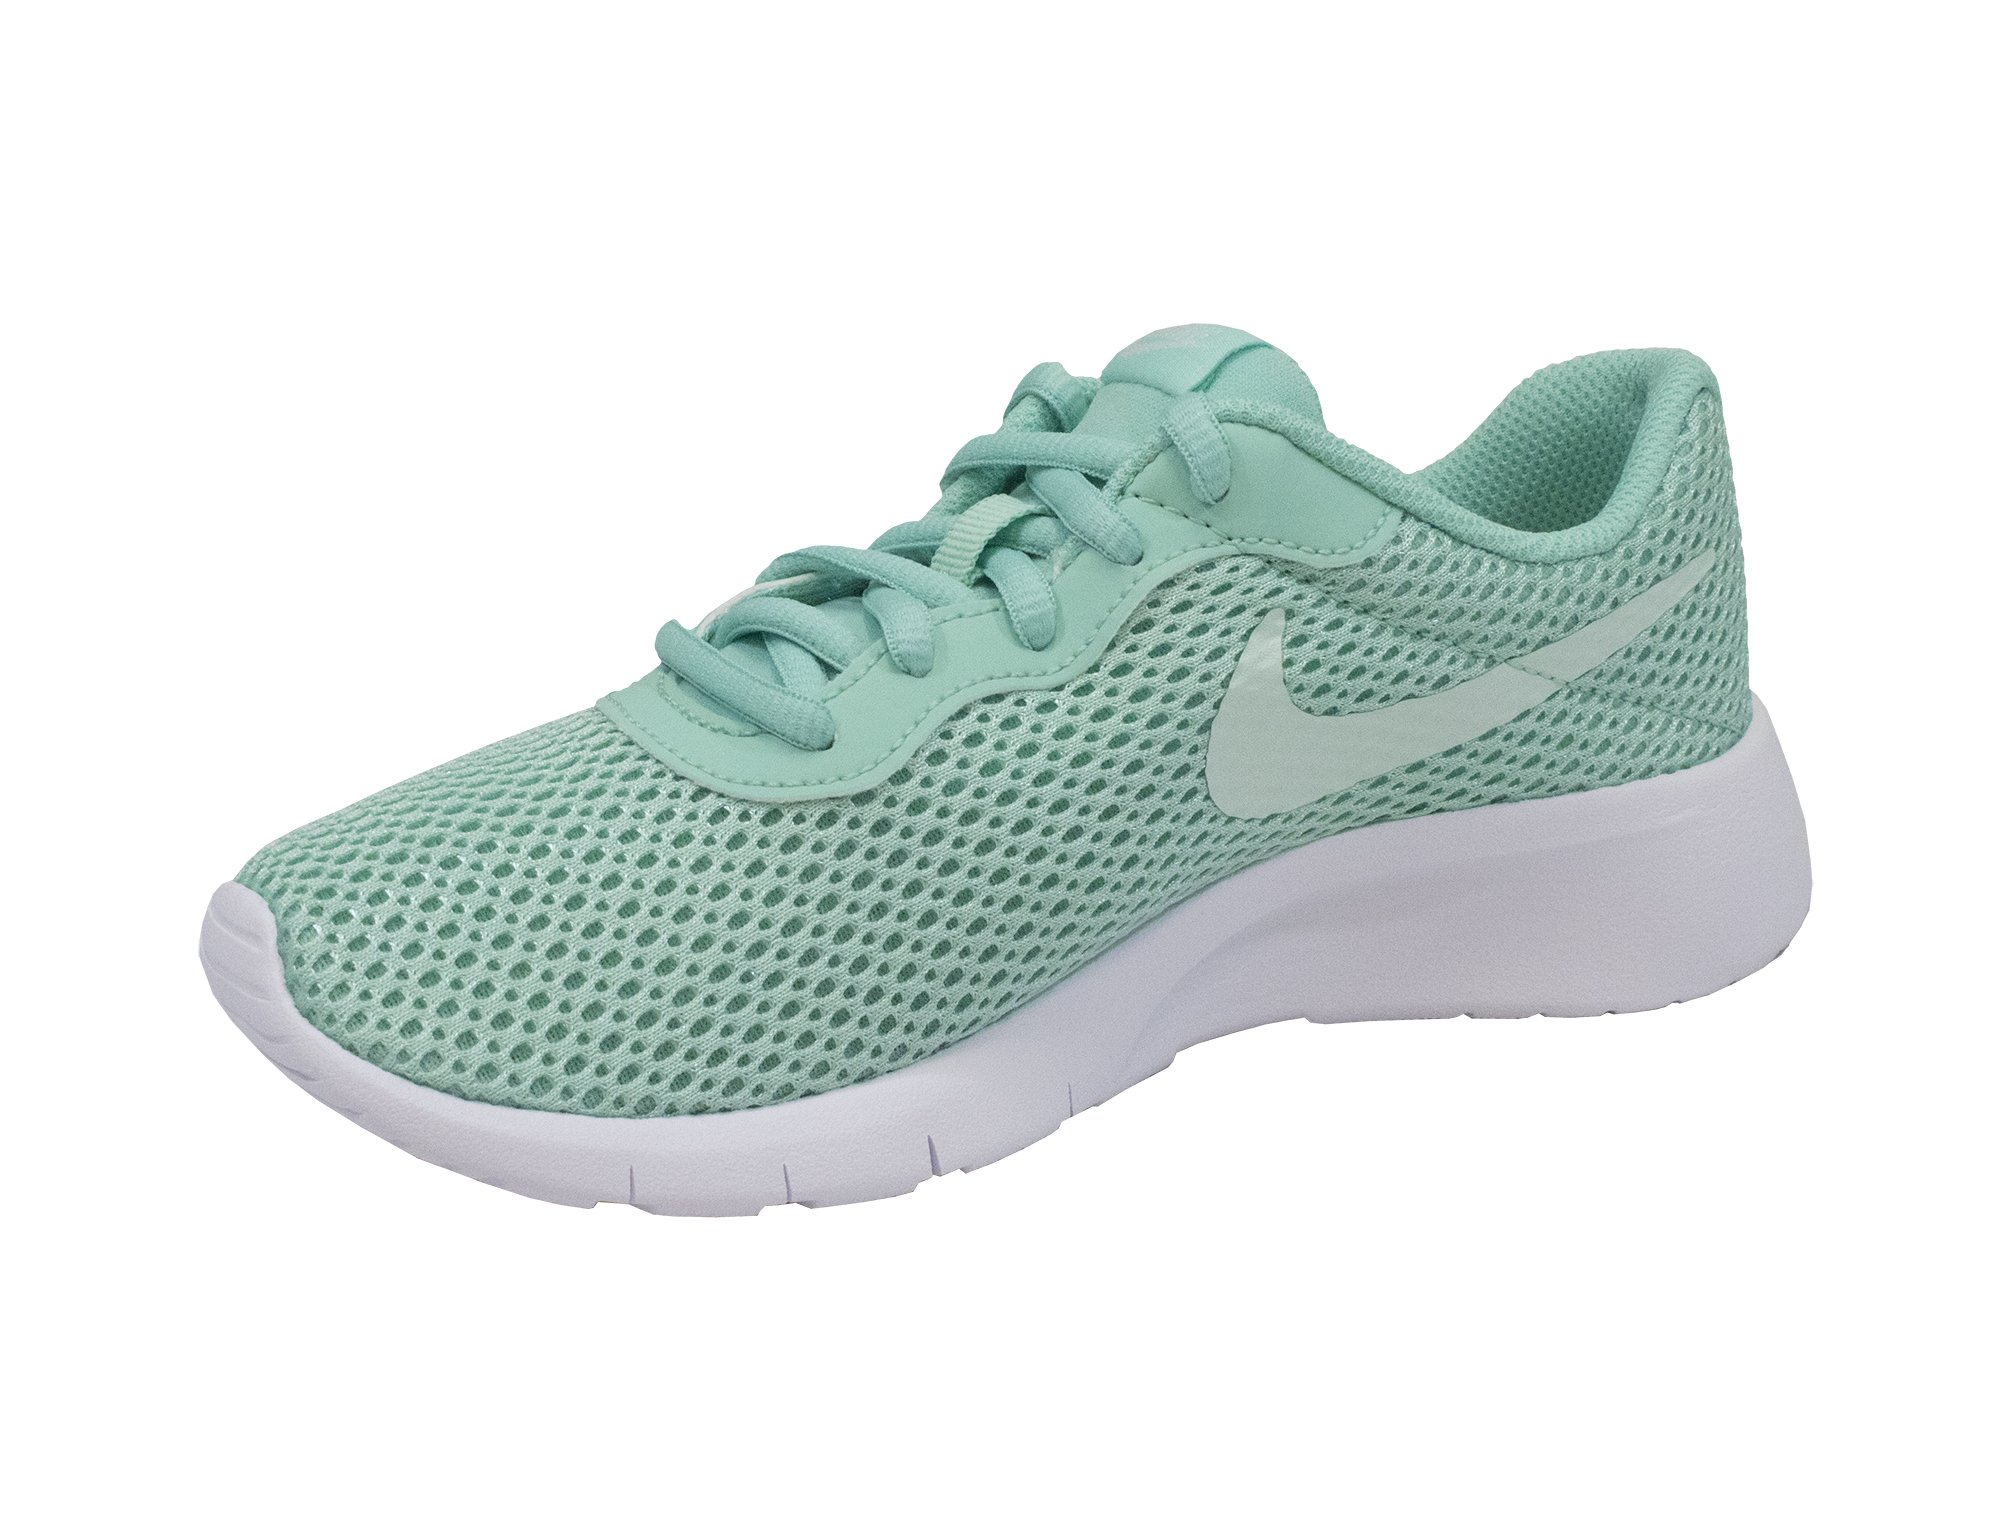 Nike Girl's Tanjun Shoe Emerald Rise/Igloo/White Size 1 M US